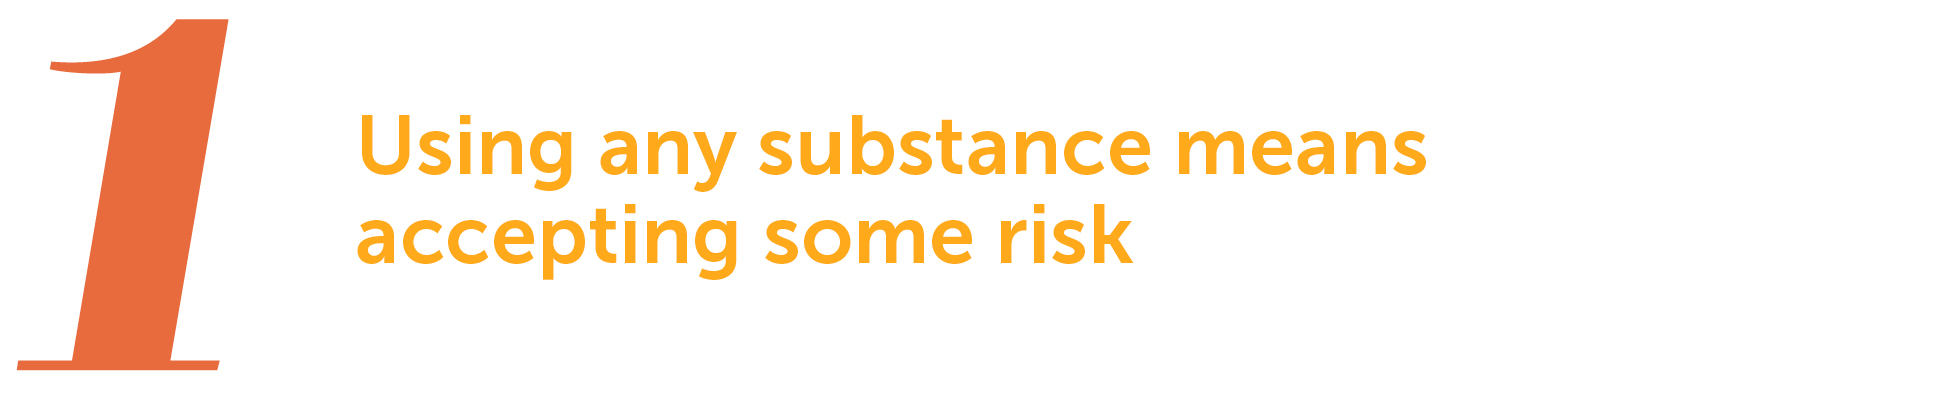 1. Using any substance means accepting some risk